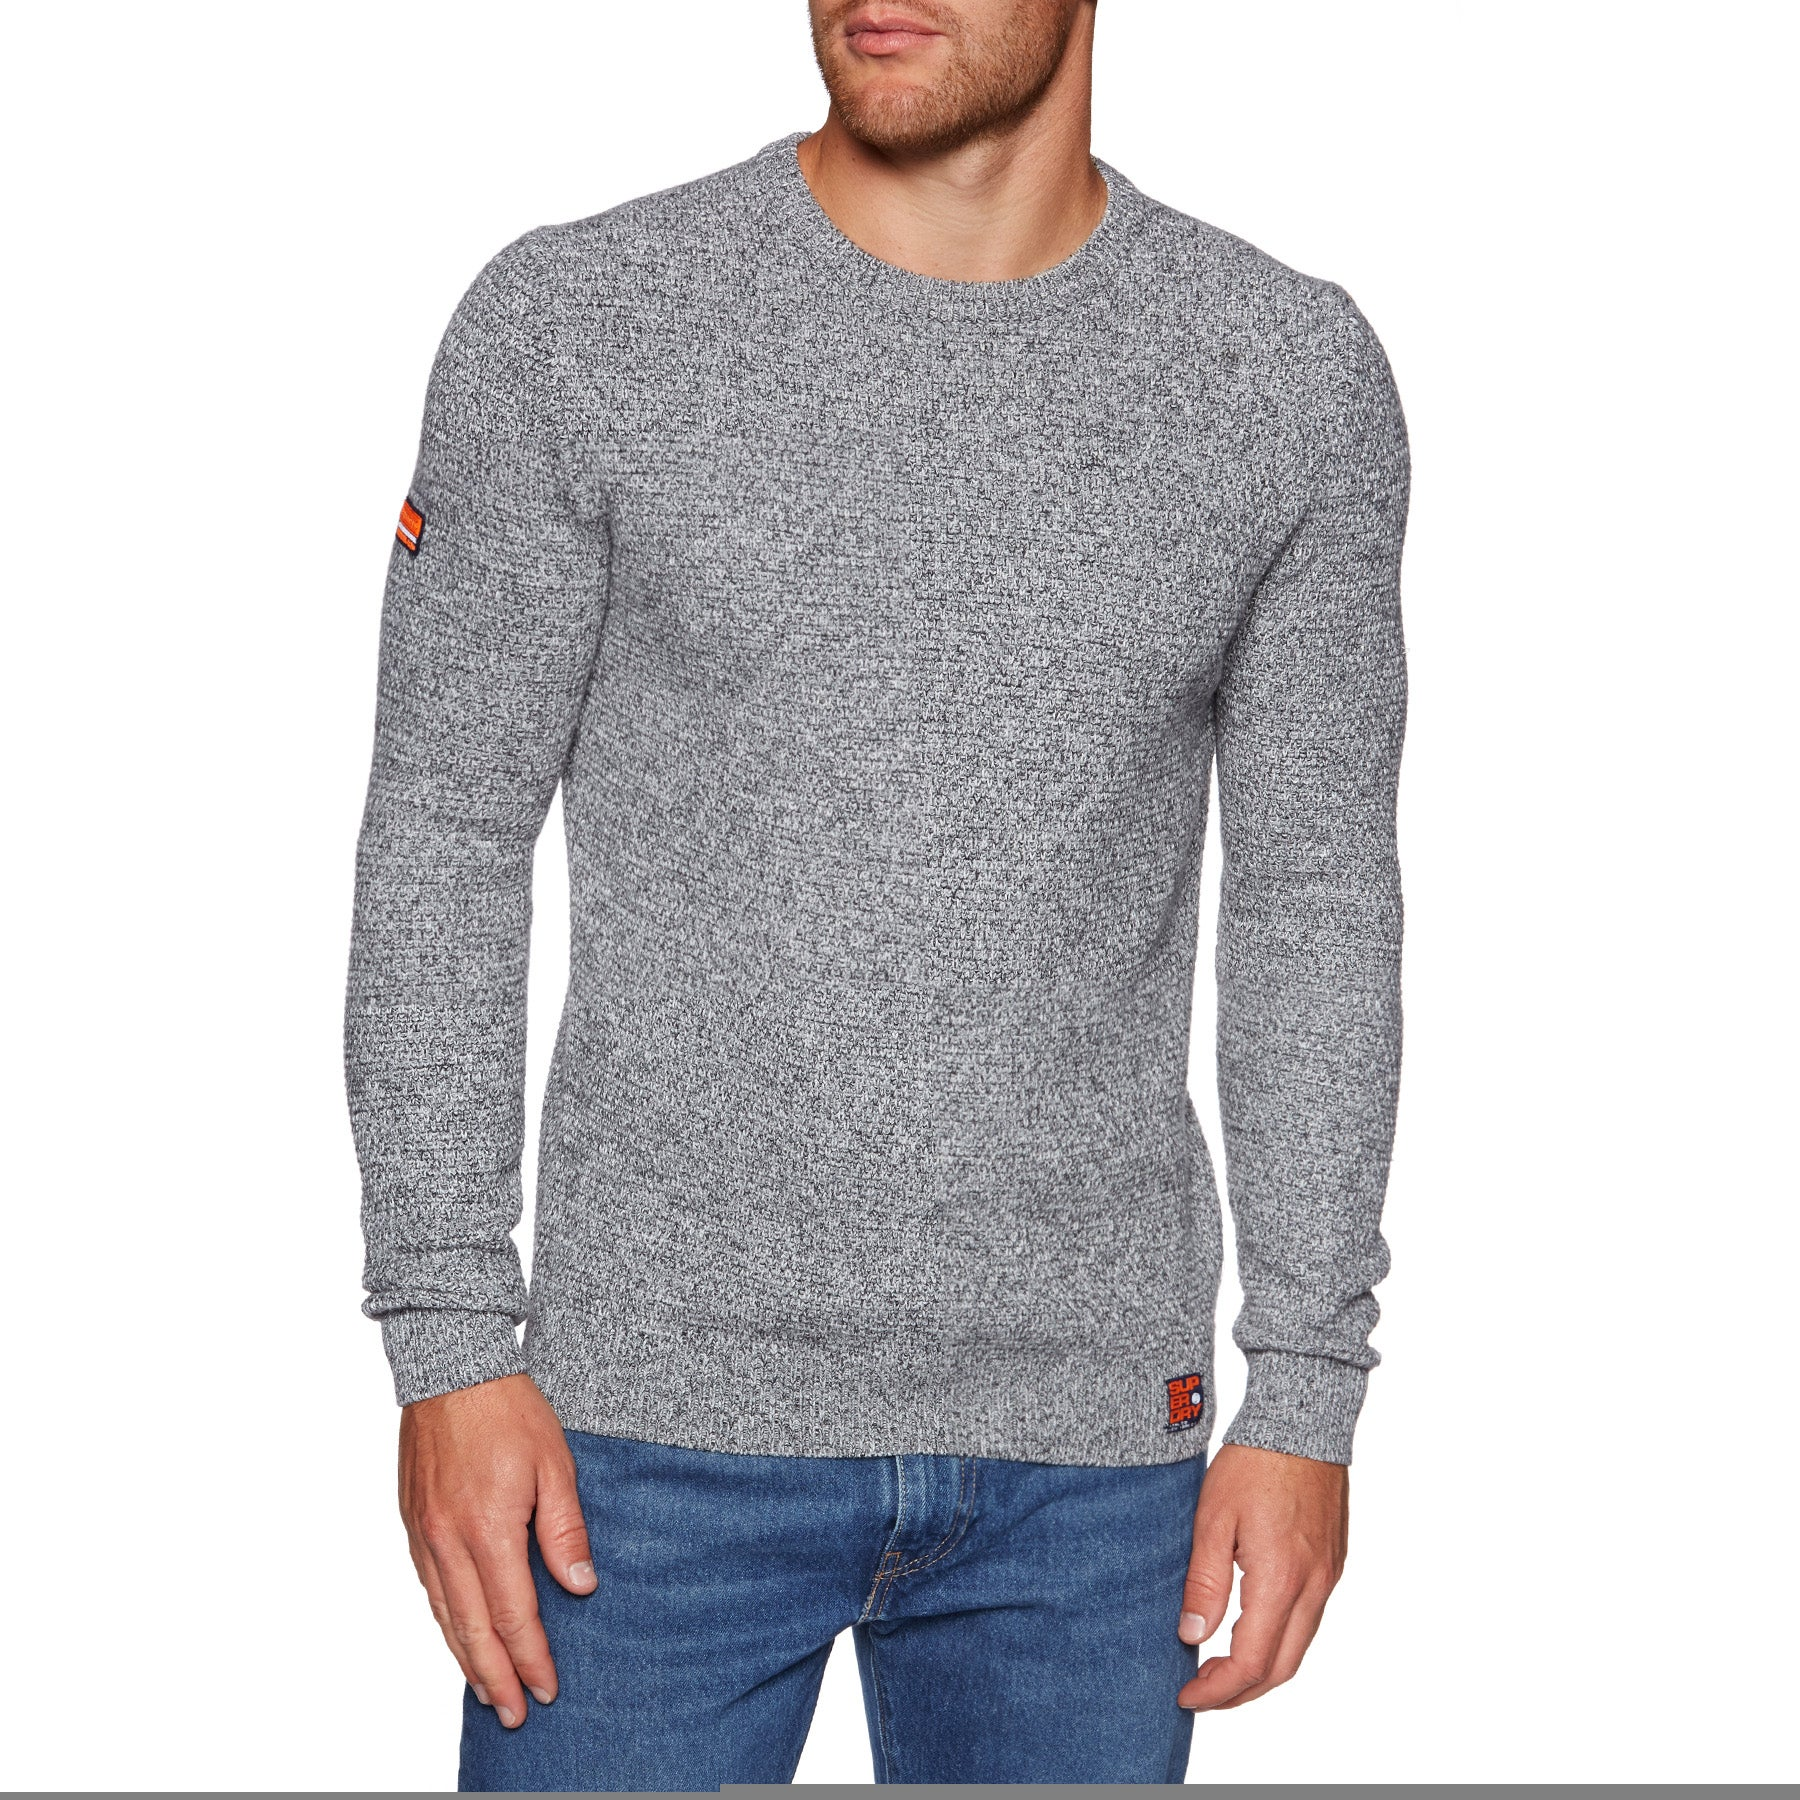 Superdry Upstate Crew Sweater - Graphite Grey Mix